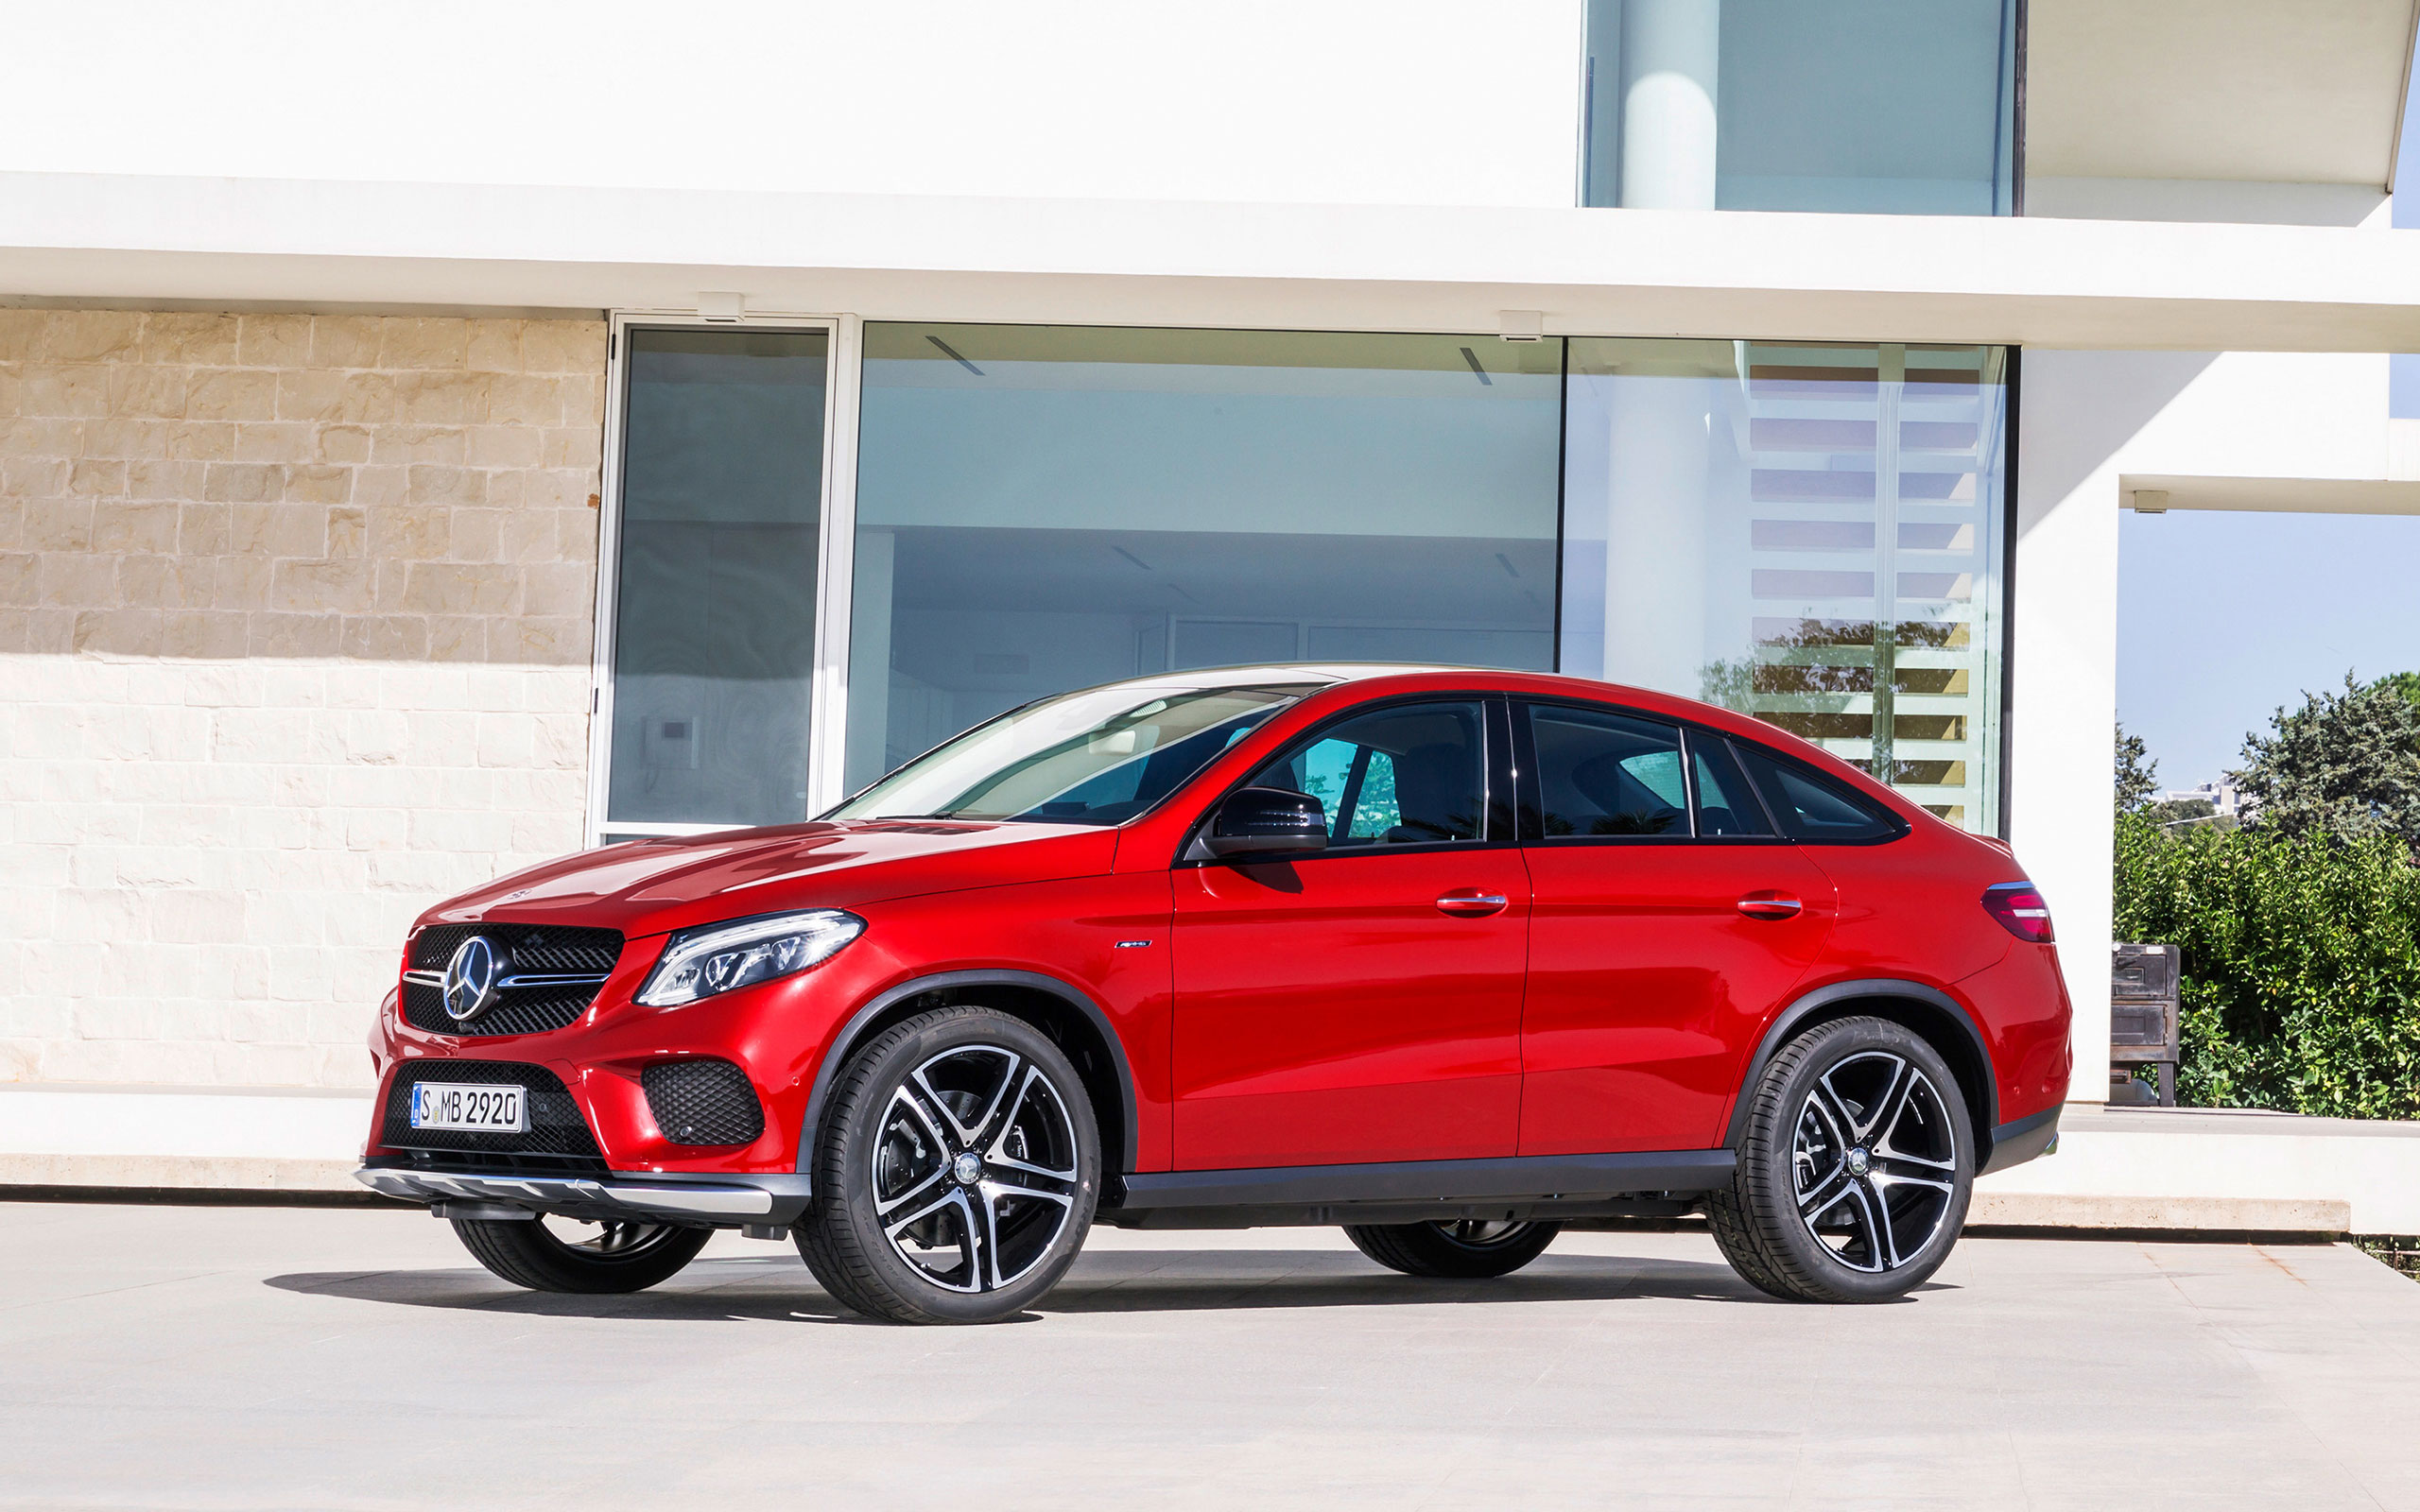 https://assets.mbusa.com/vcm/MB/DigitalAssets/FutureModels/Responsive/2016_GLE_Coupe/Gallery/2016-GLE-CLASS-COUPE-FUTURE-GALLERY-008-WR-D.jpg